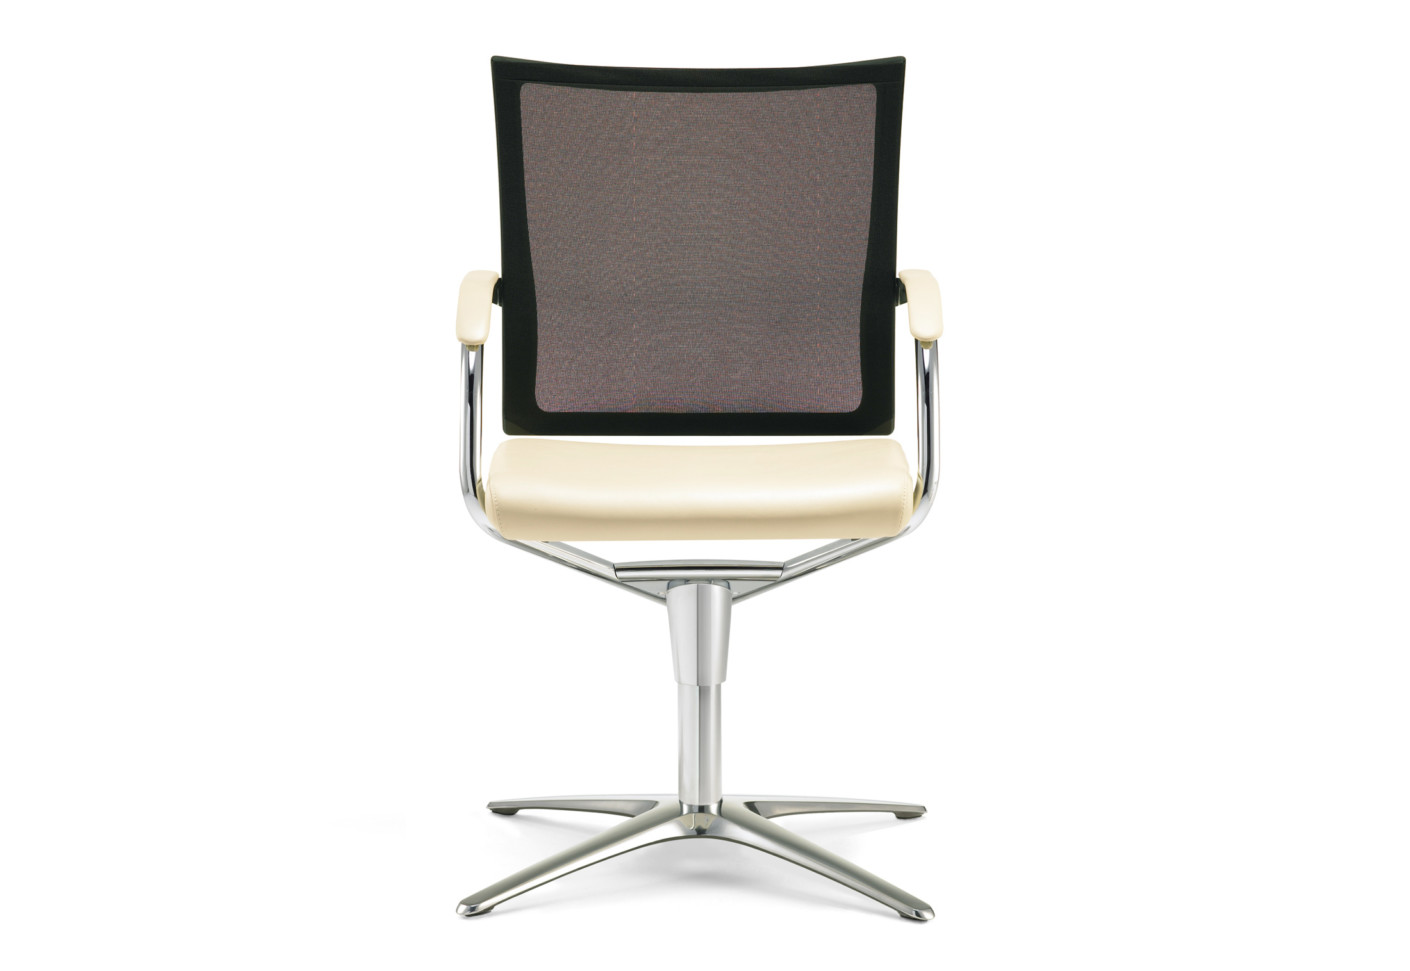 Orbit Network Conference swivel chair by Klöber